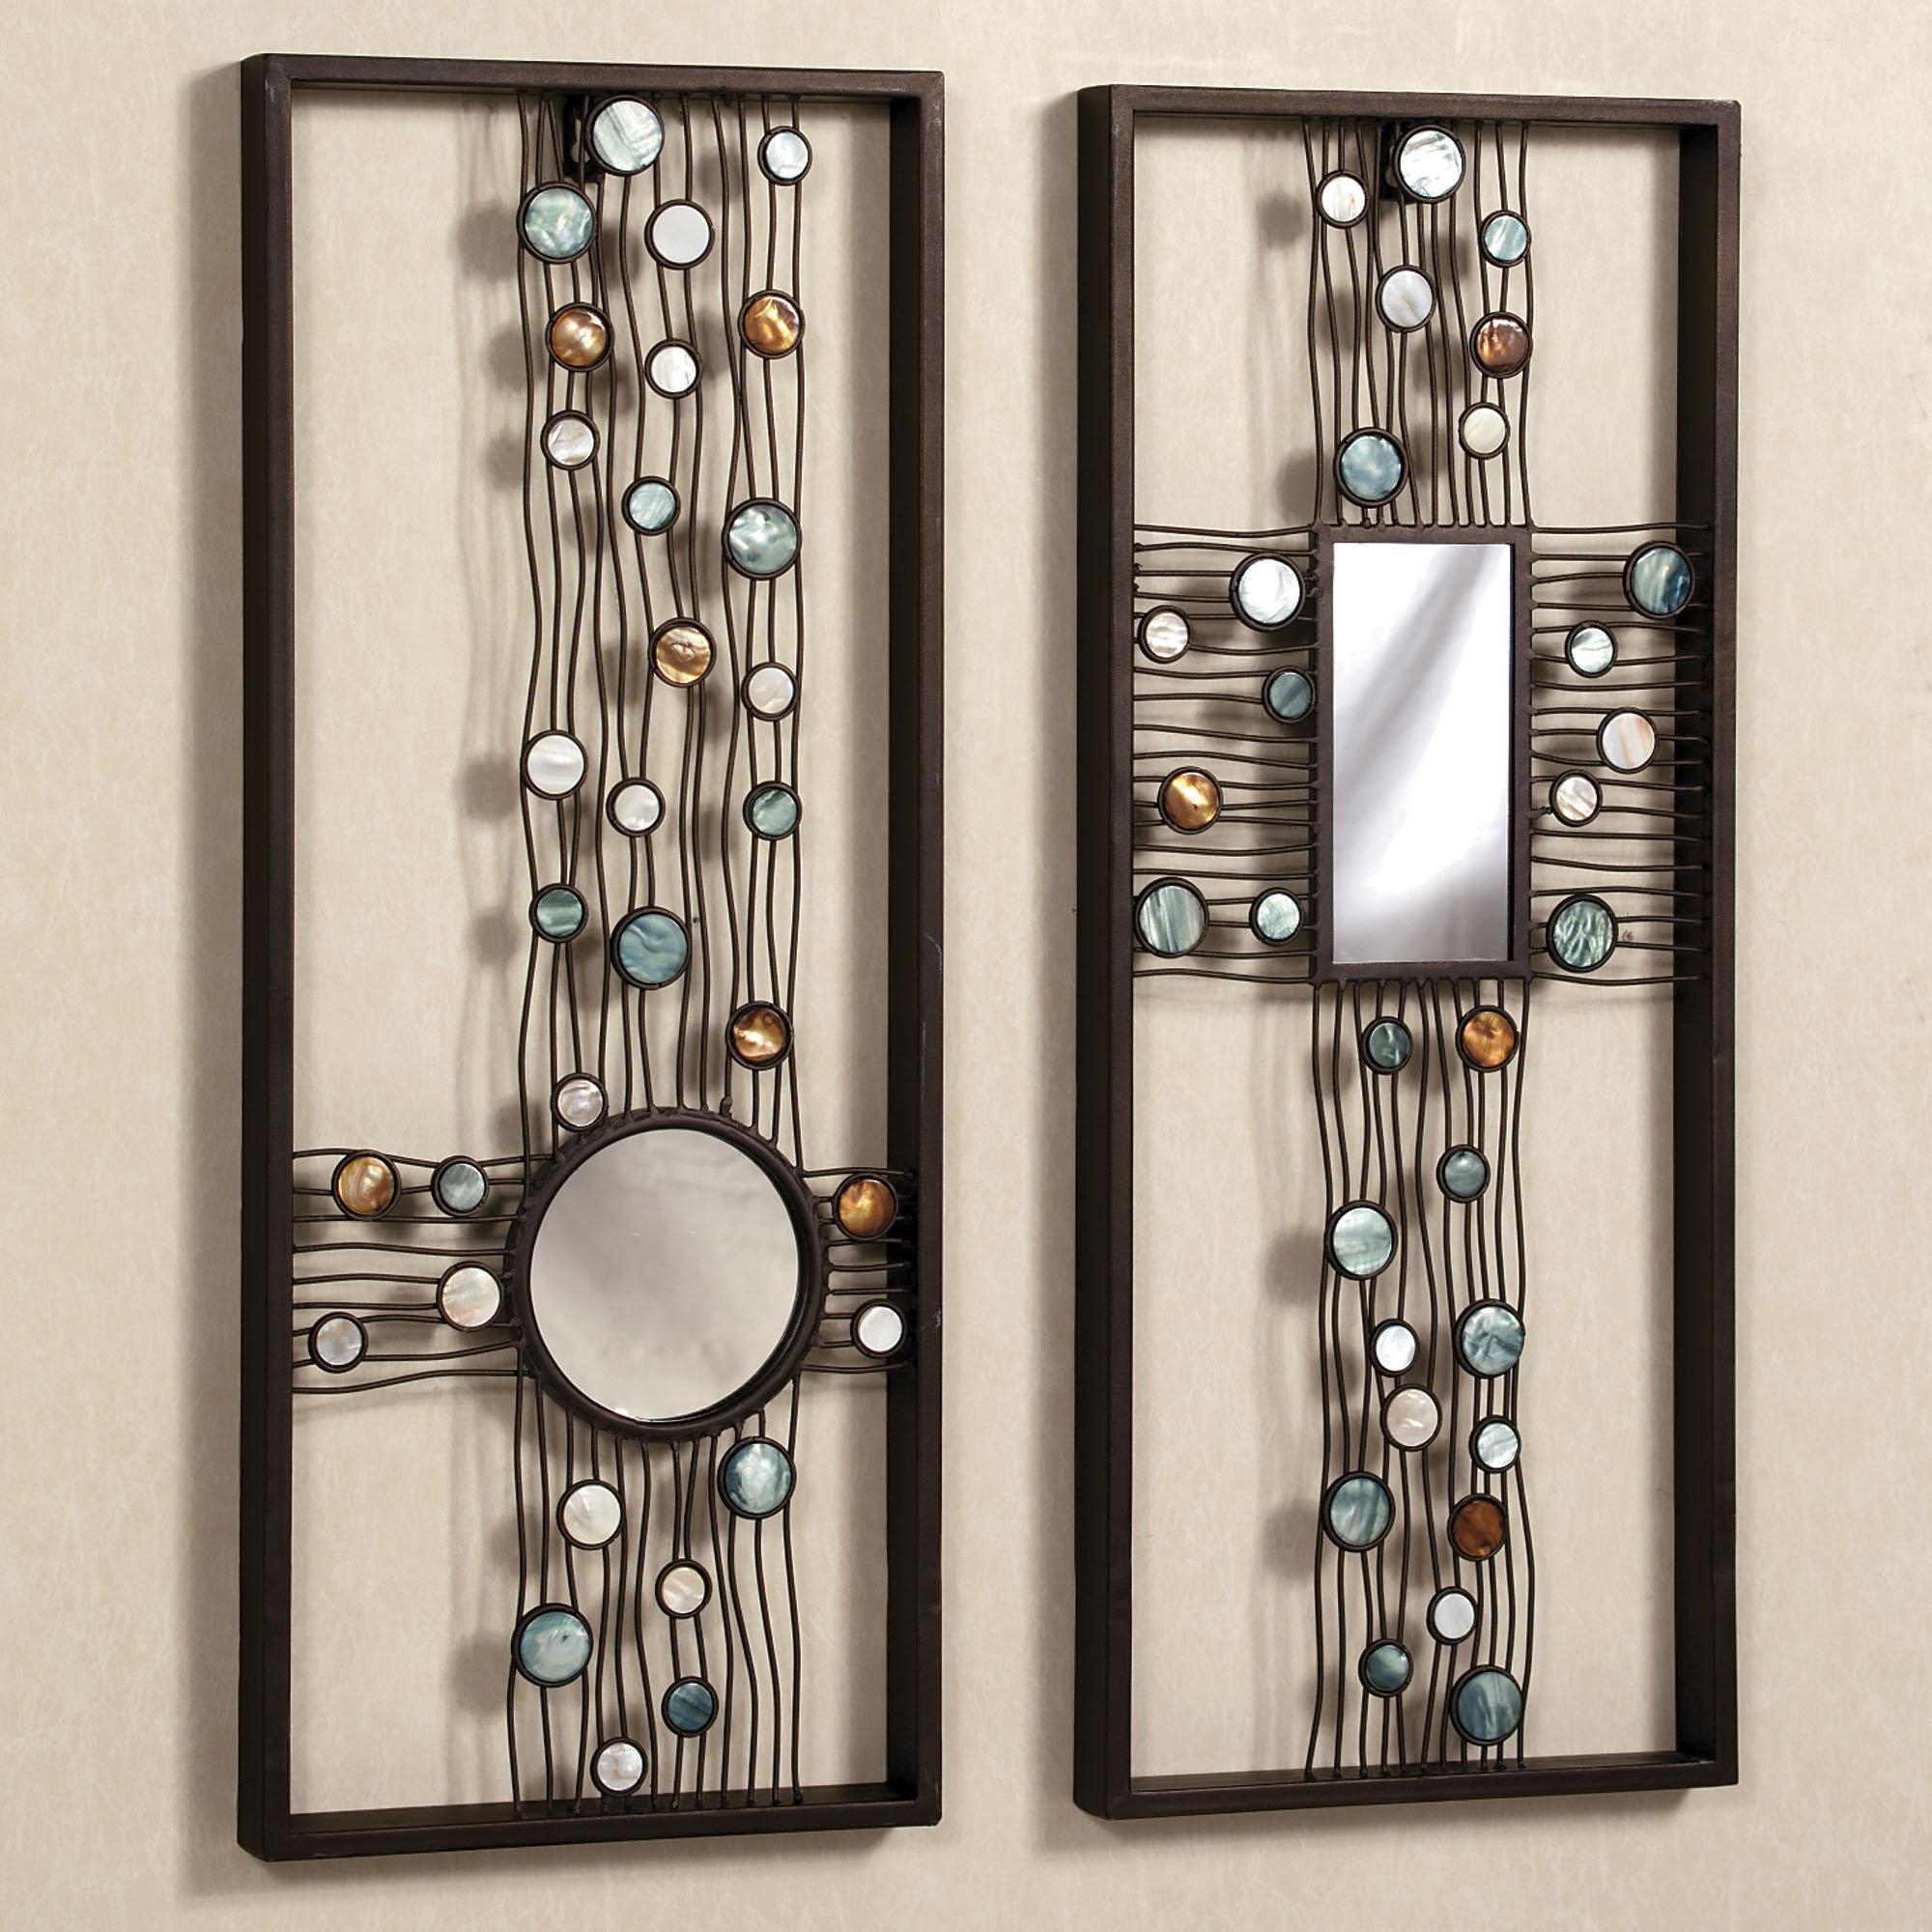 Decor : 3 Framed Wall Art Ideas Framed Wall Art Images About Pertaining To Metal Framed Wall Art (Image 3 of 20)